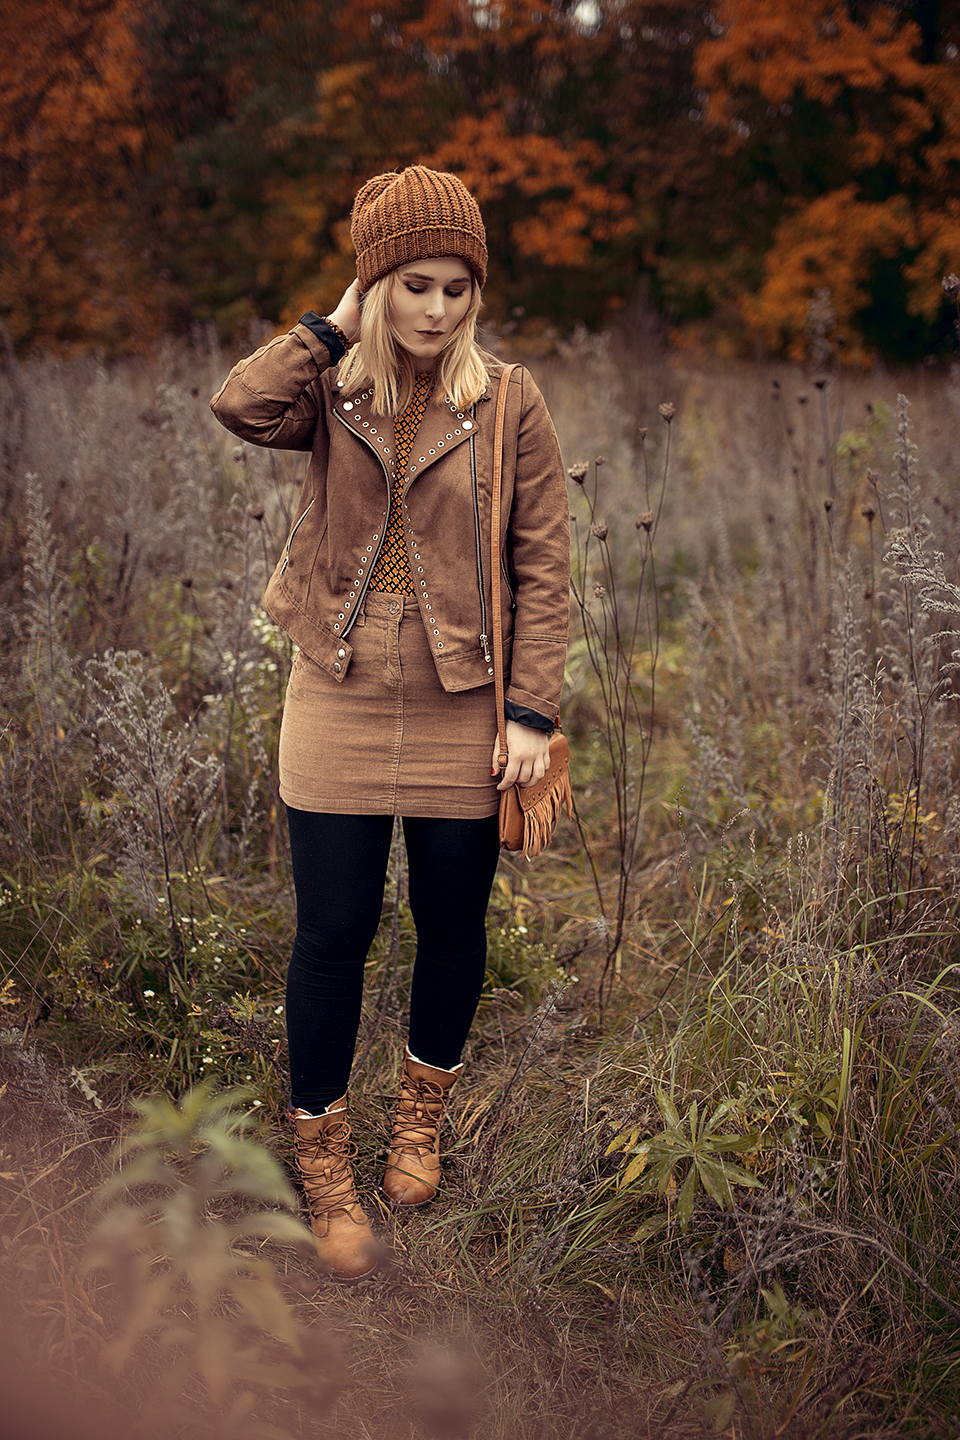 Herbst Outfit in braun